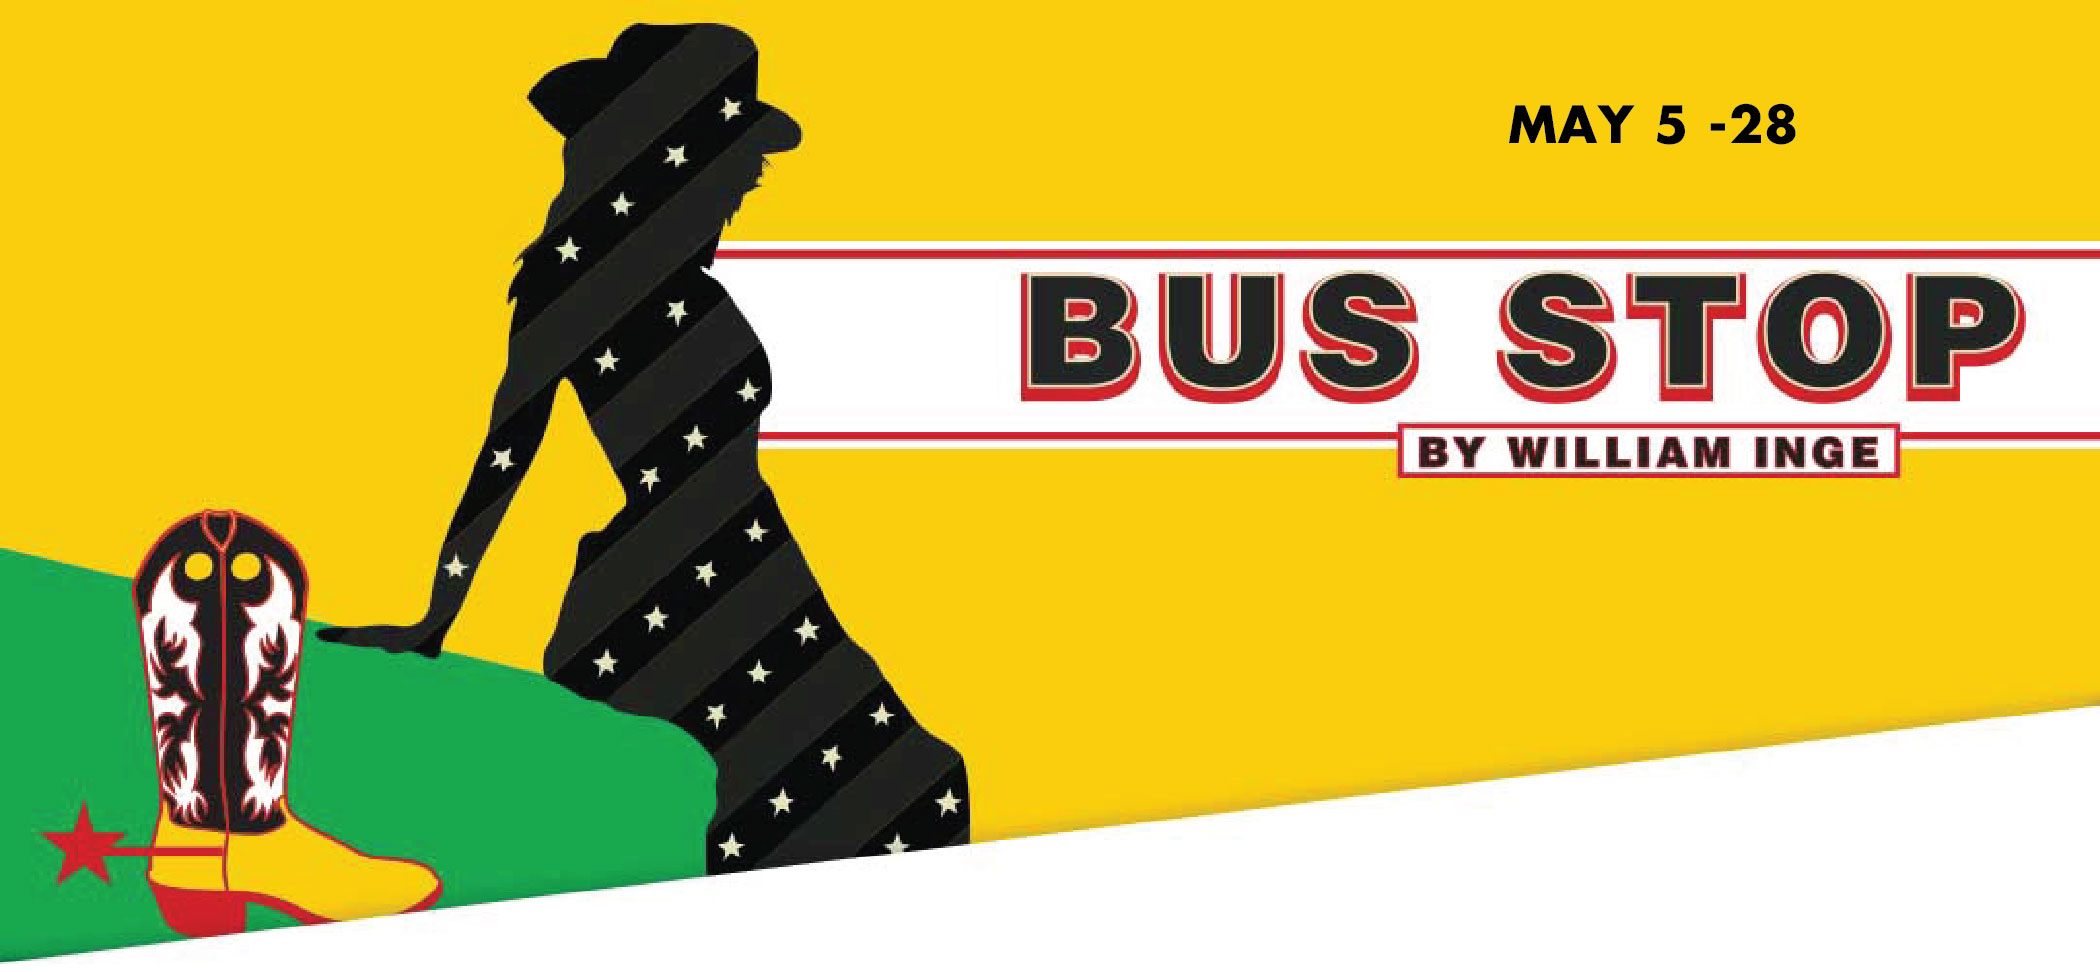 a review of inges play the bus stop Eclipse theatre company continues its season dedicated to the work of william inge with this 1955 play set in a kansas bus-stop cafe during a blizzard.